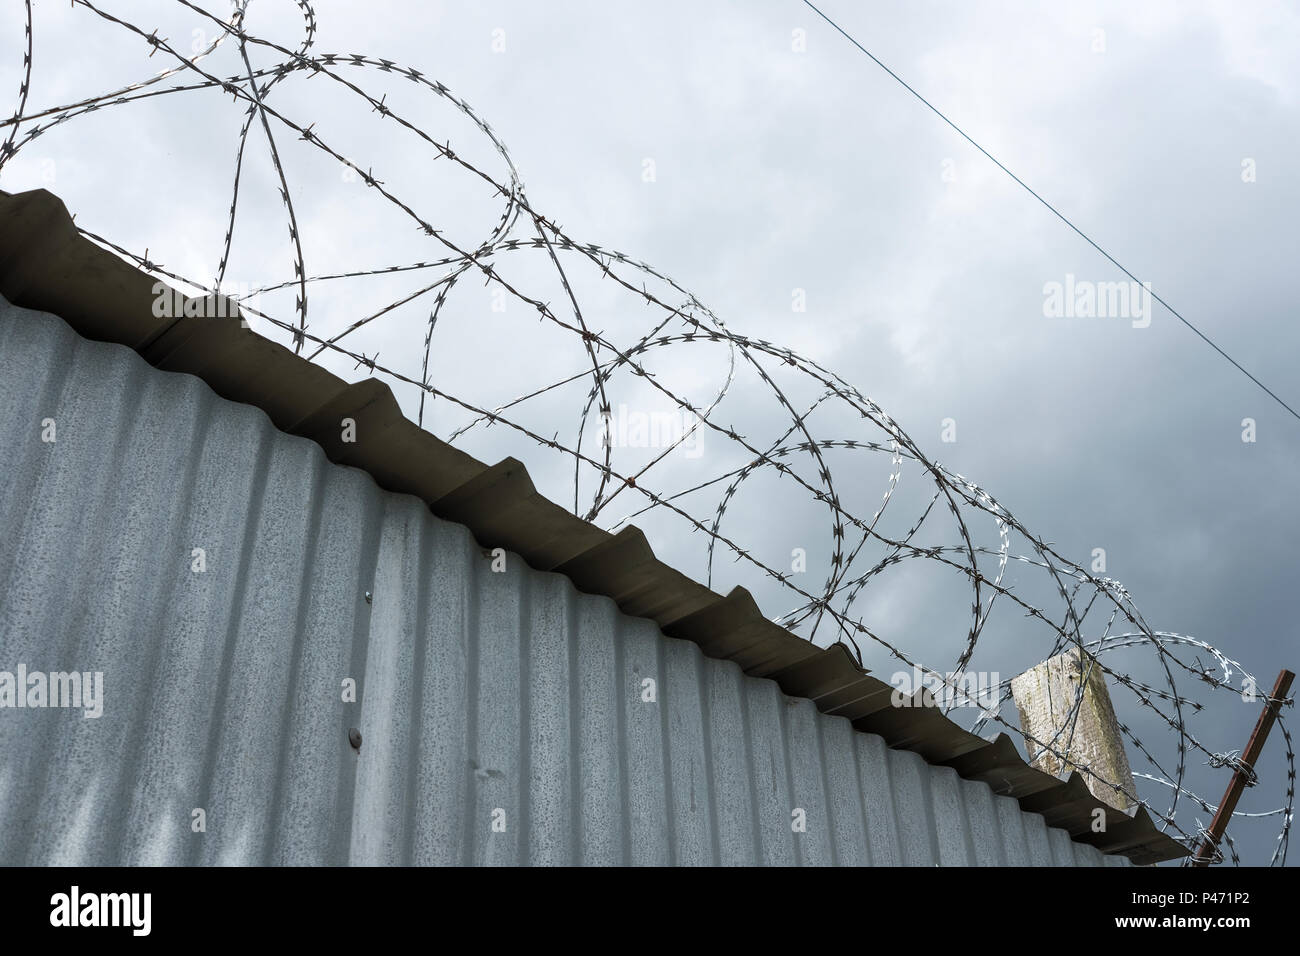 Oppression Stock Photos & Oppression Stock Images - Alamy